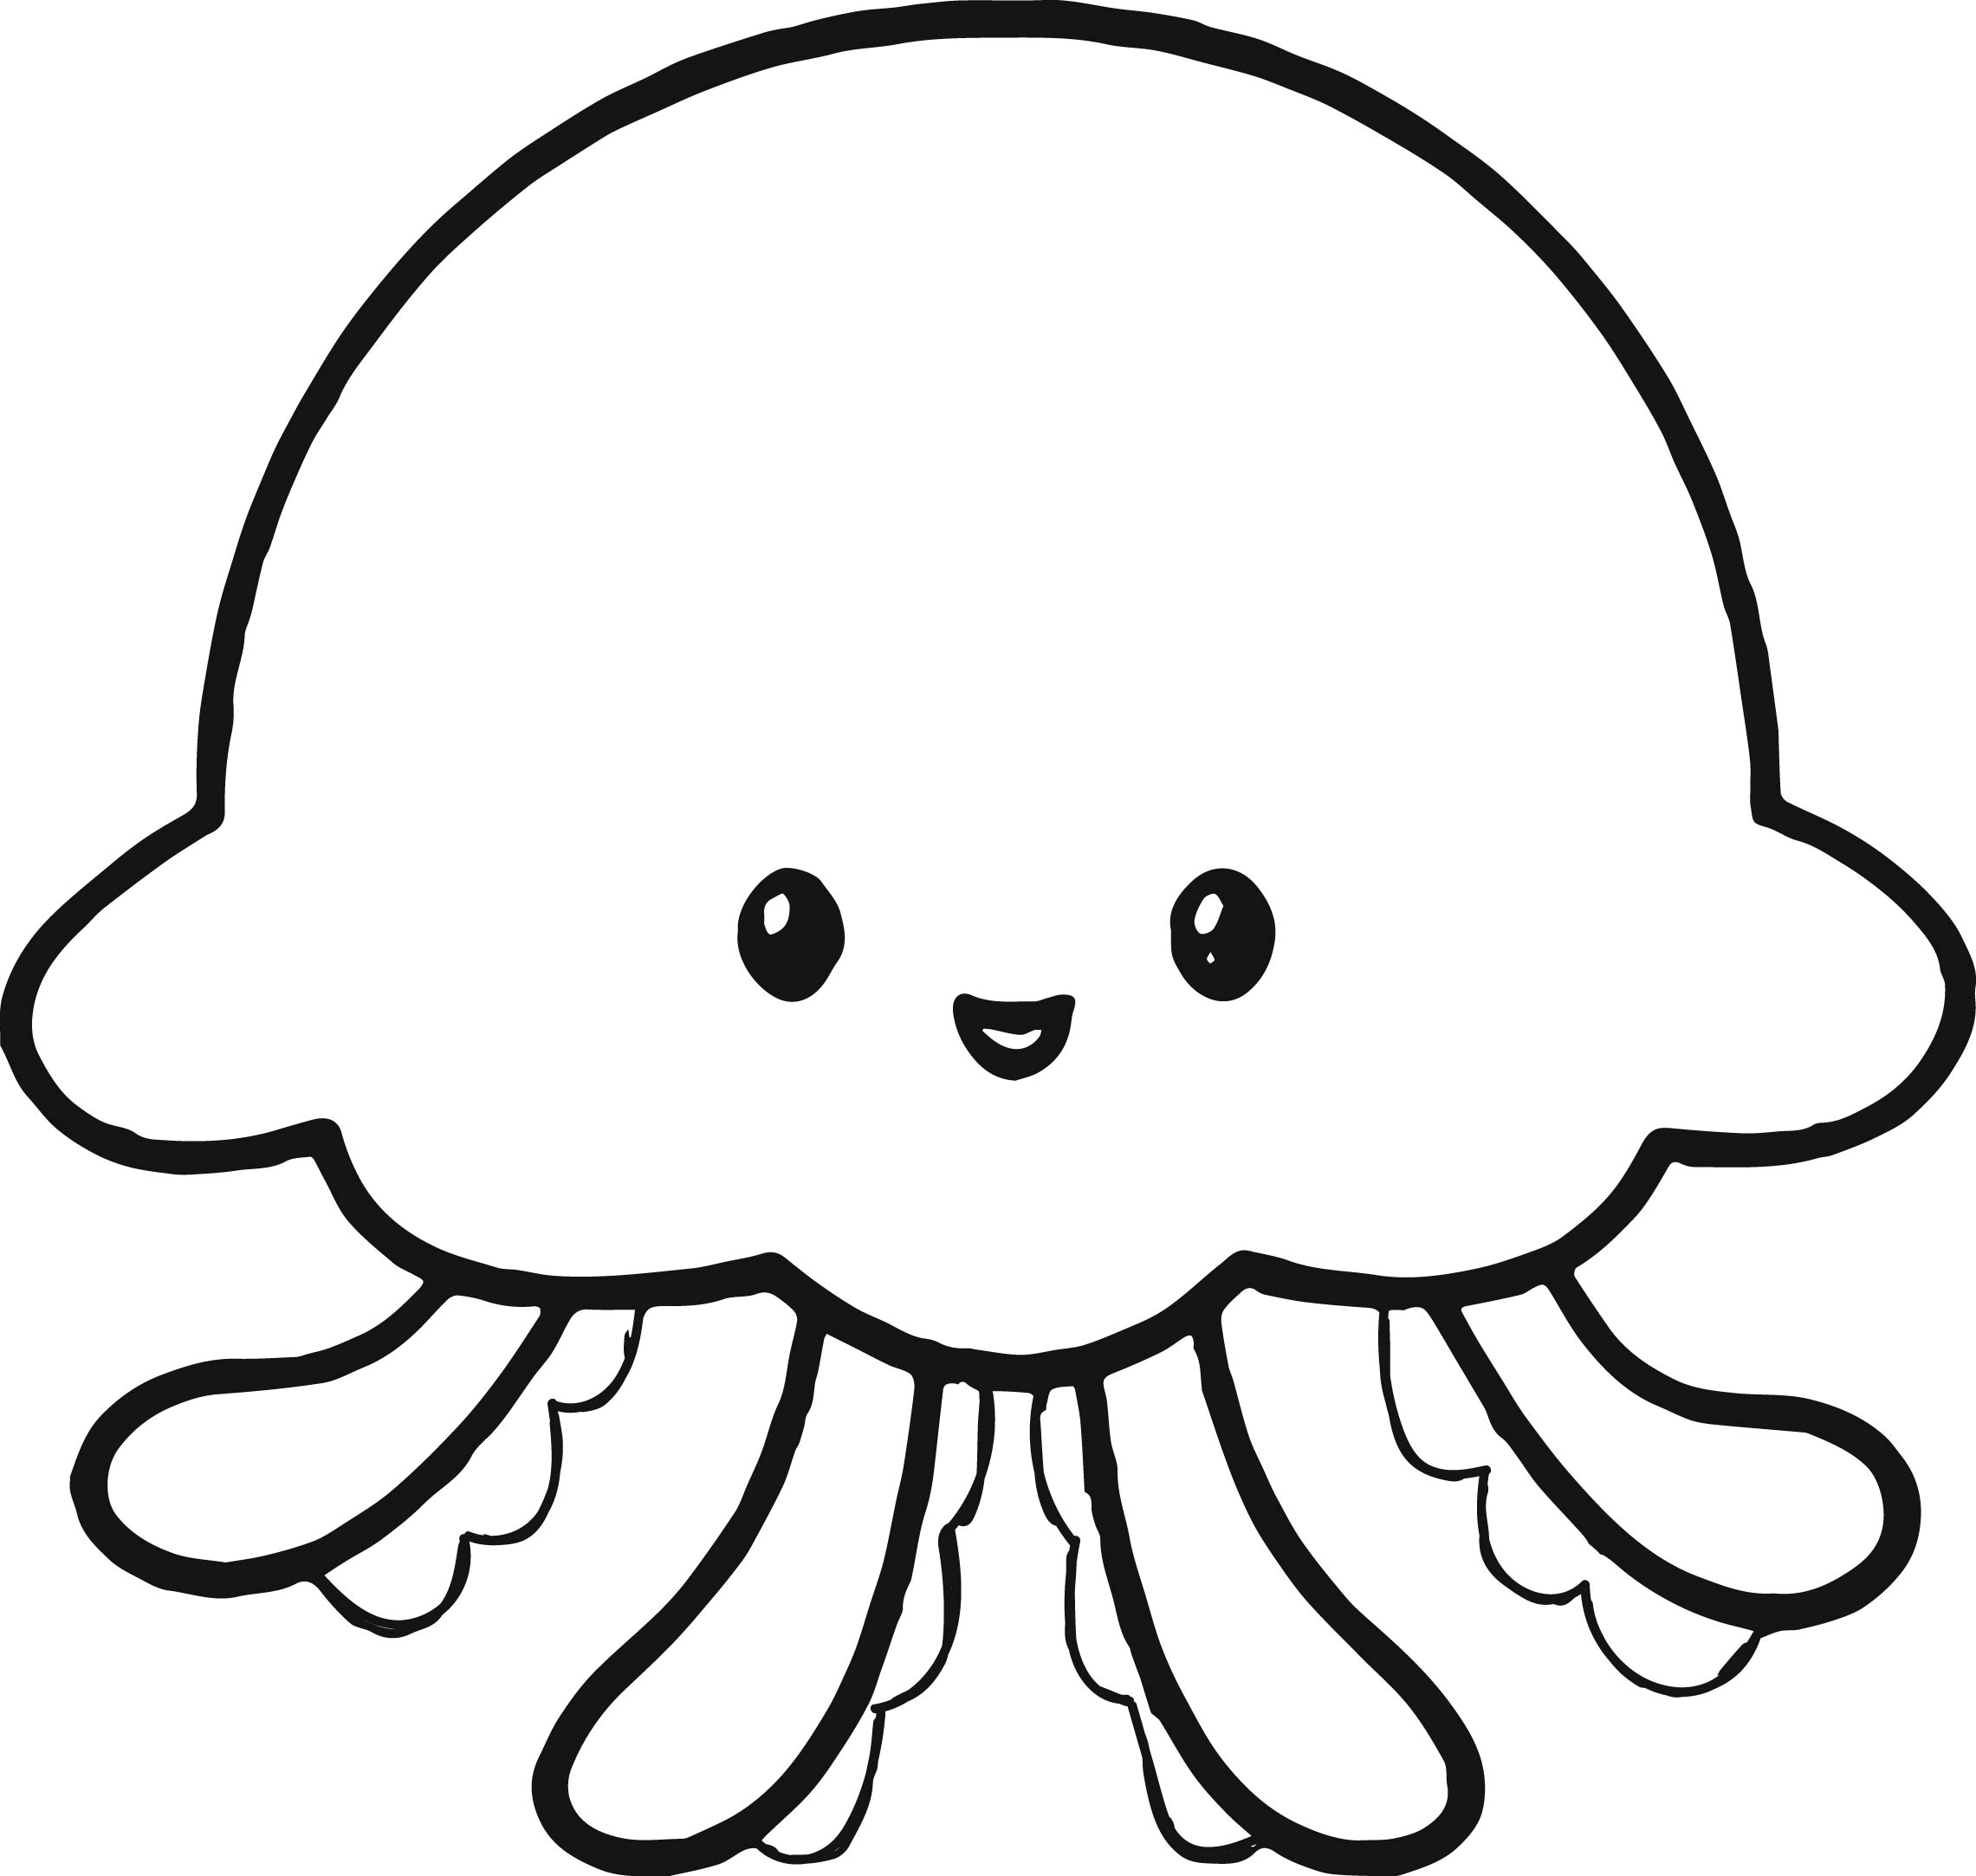 2281x2166 unique jellyfish coloring page 17 in coloring books with jellyfish